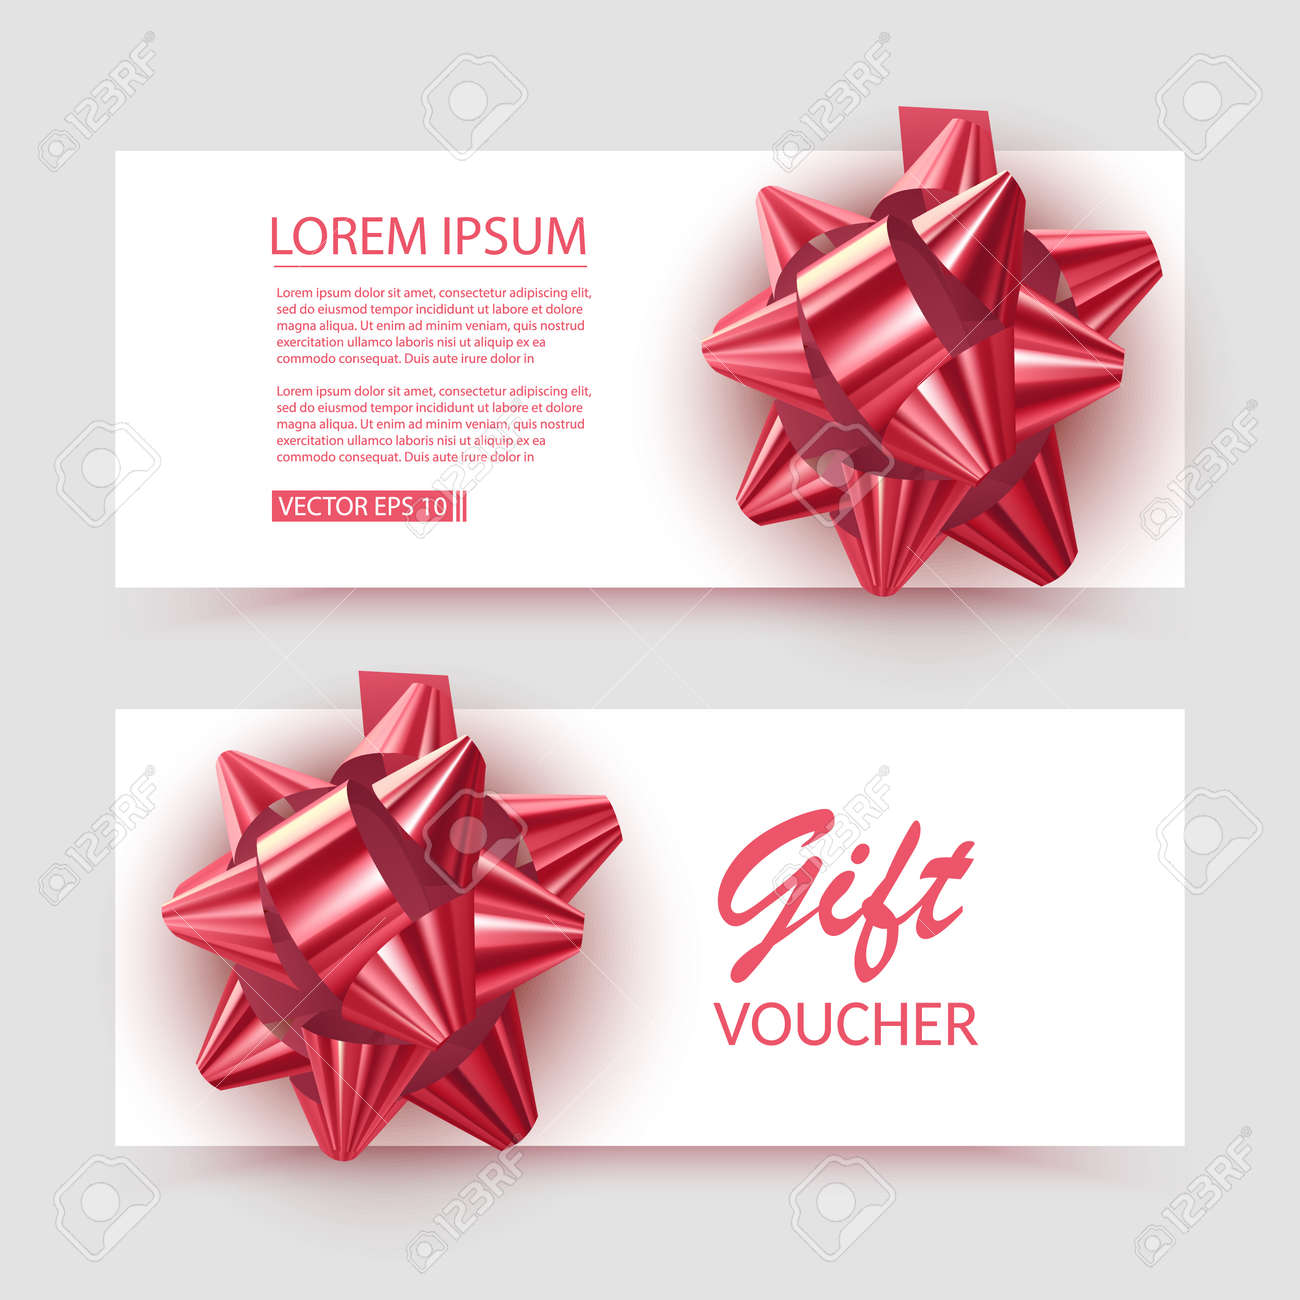 Voucher template with red bow, ribbons. Design usable for gift coupon, voucher, invitation, certificate, etc. Vector eps 10 illustration - 171657233